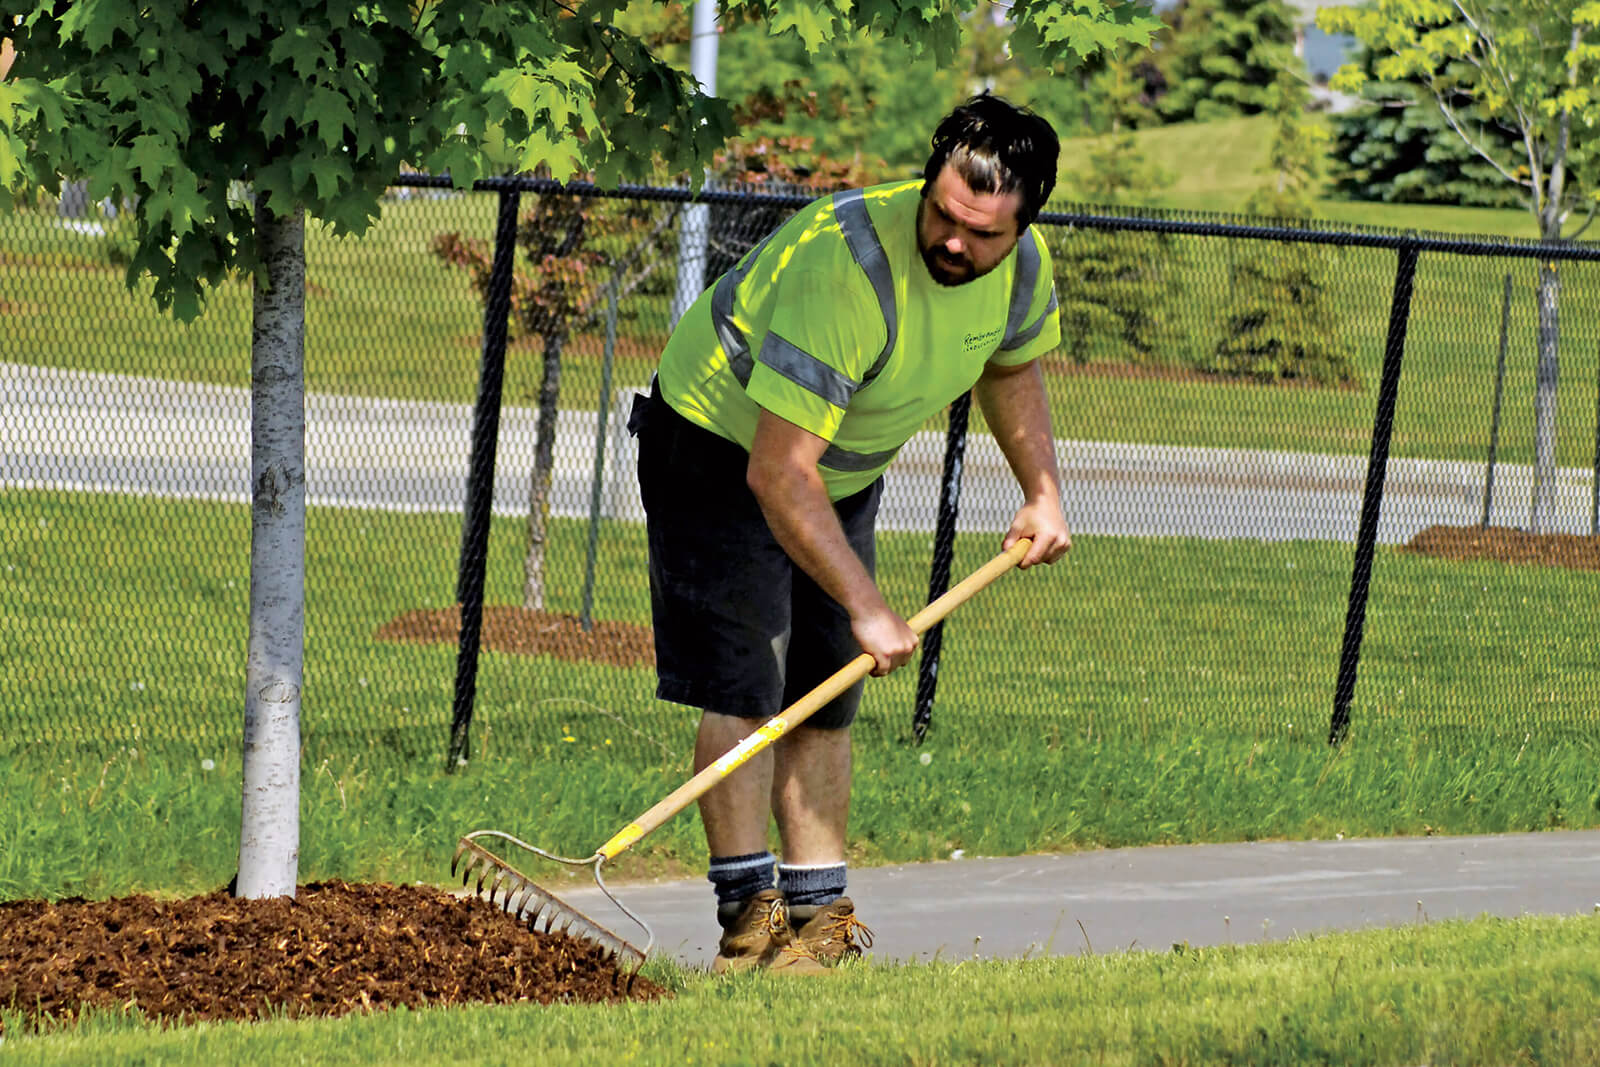 grounds maintenance worker raking mulch under a tree